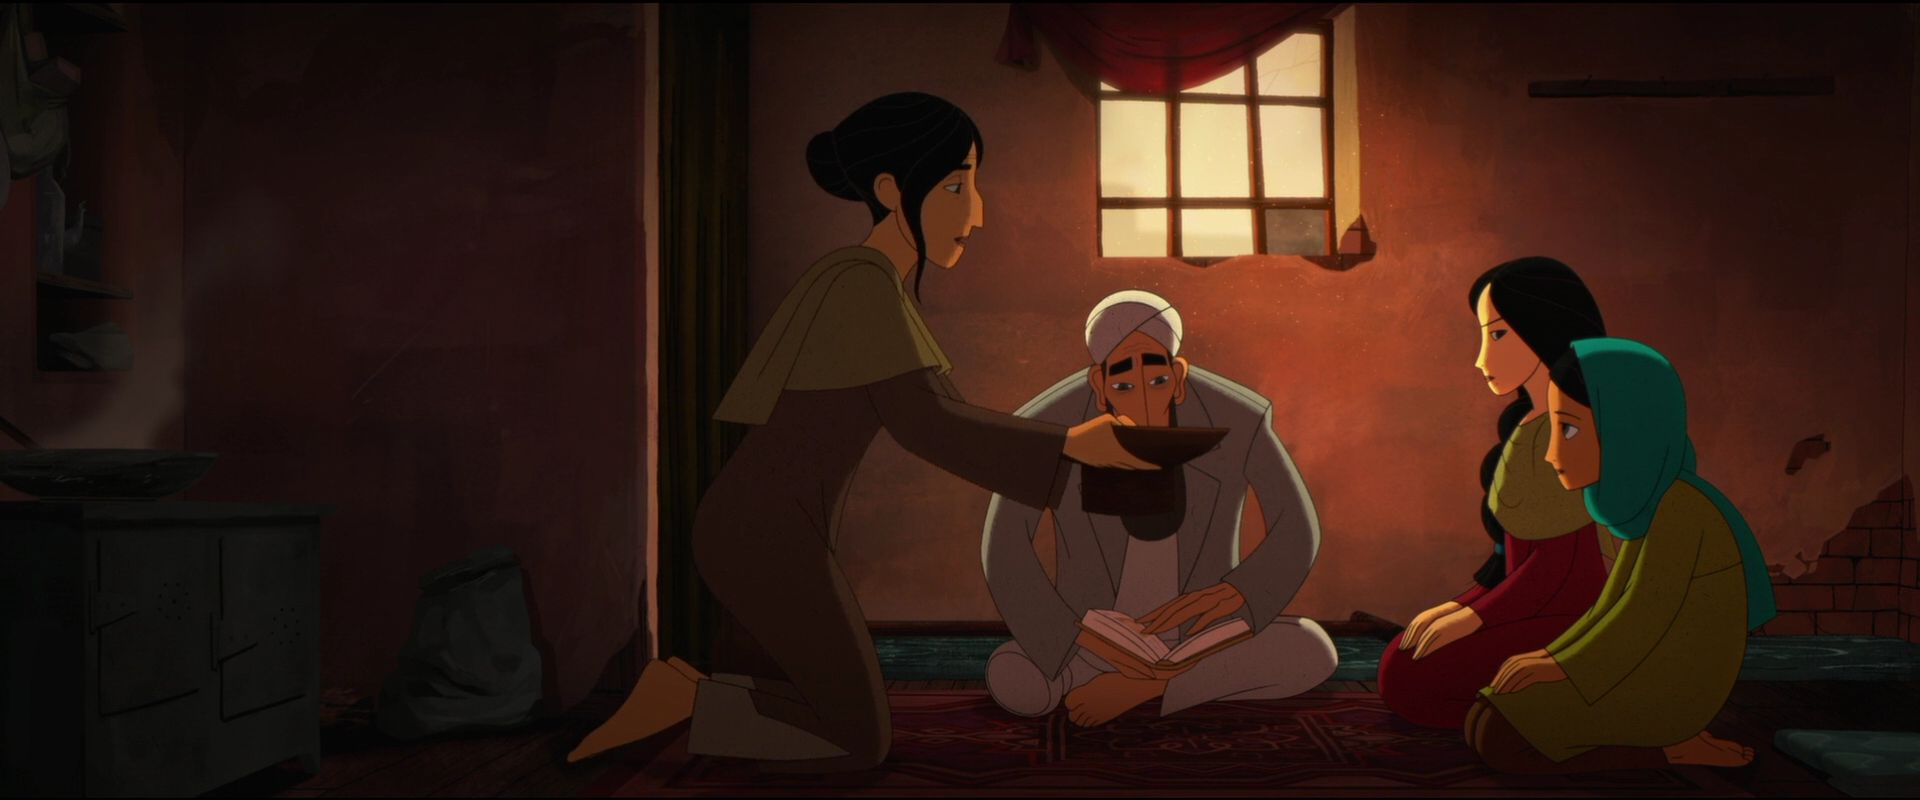 screencap from the breadwinner movie with 4 characters in sitting in semi circle